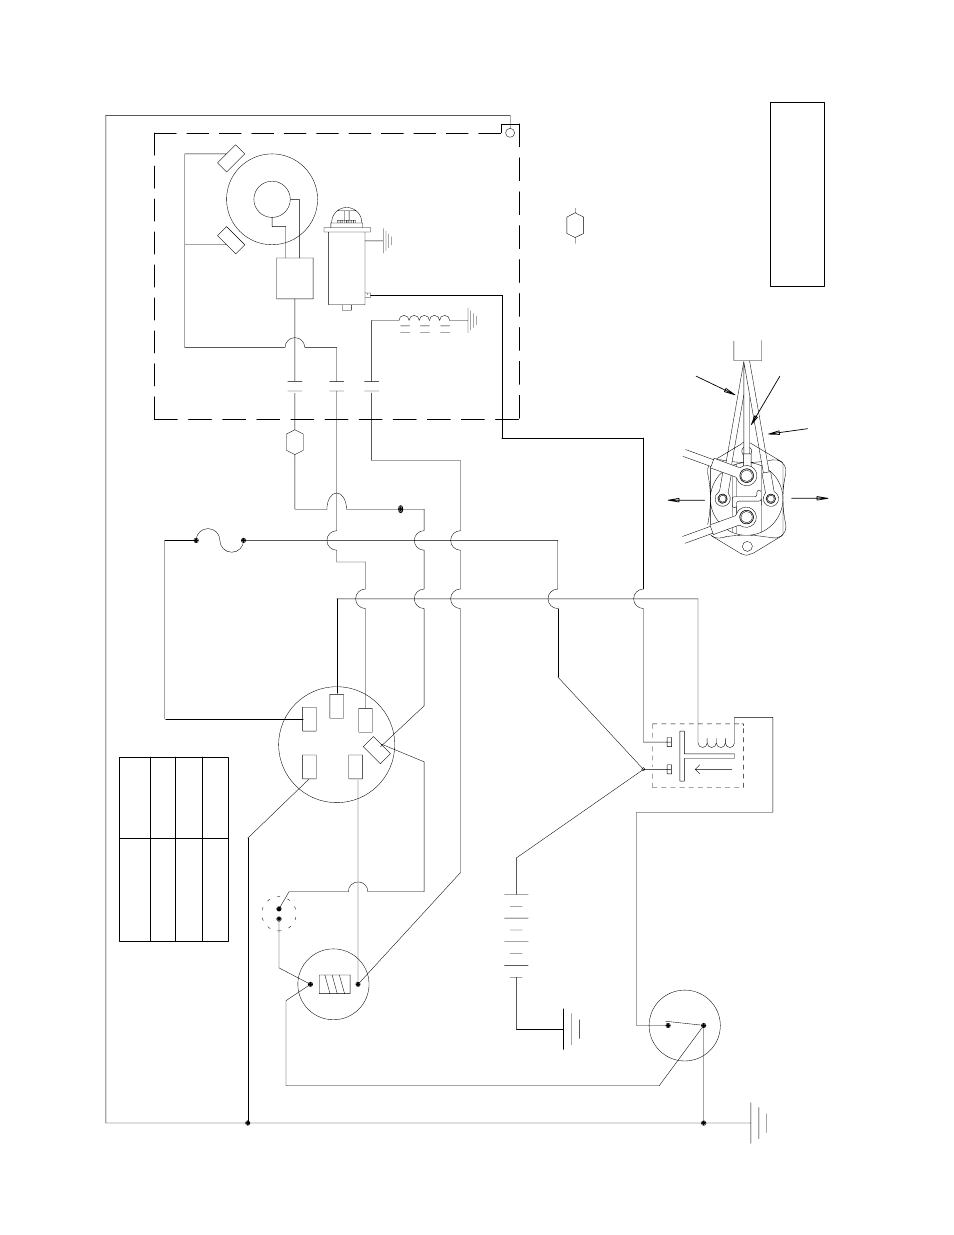 medium resolution of toro engine diagram wiring diagram insidetoro sand pro engine wiring schematic wiring diagram topics toro snowblower